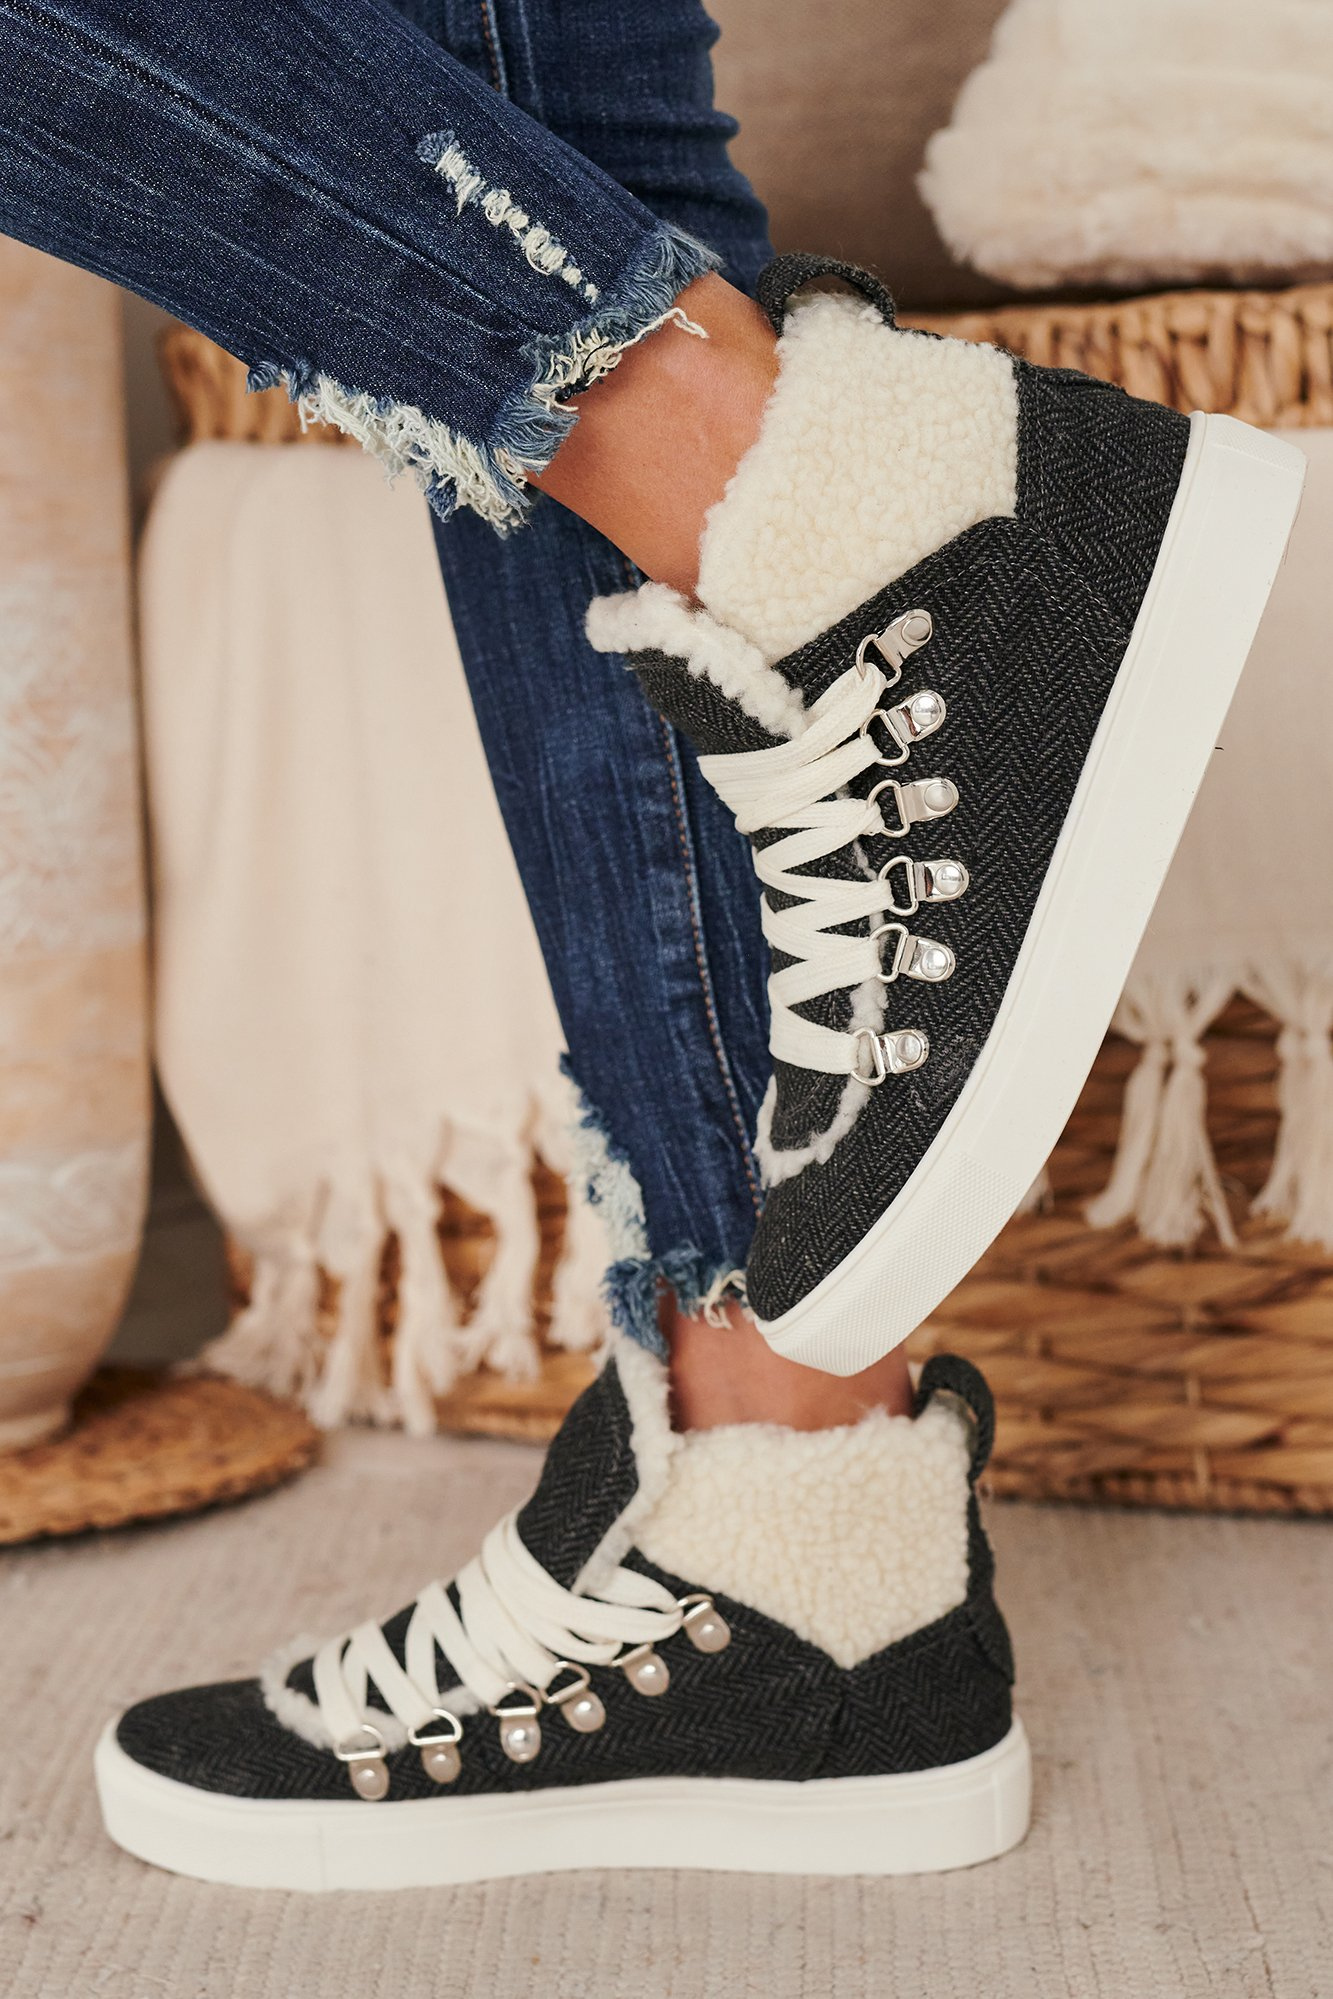 Image of Magnolia Sherpa Sneakers (Charcoal)